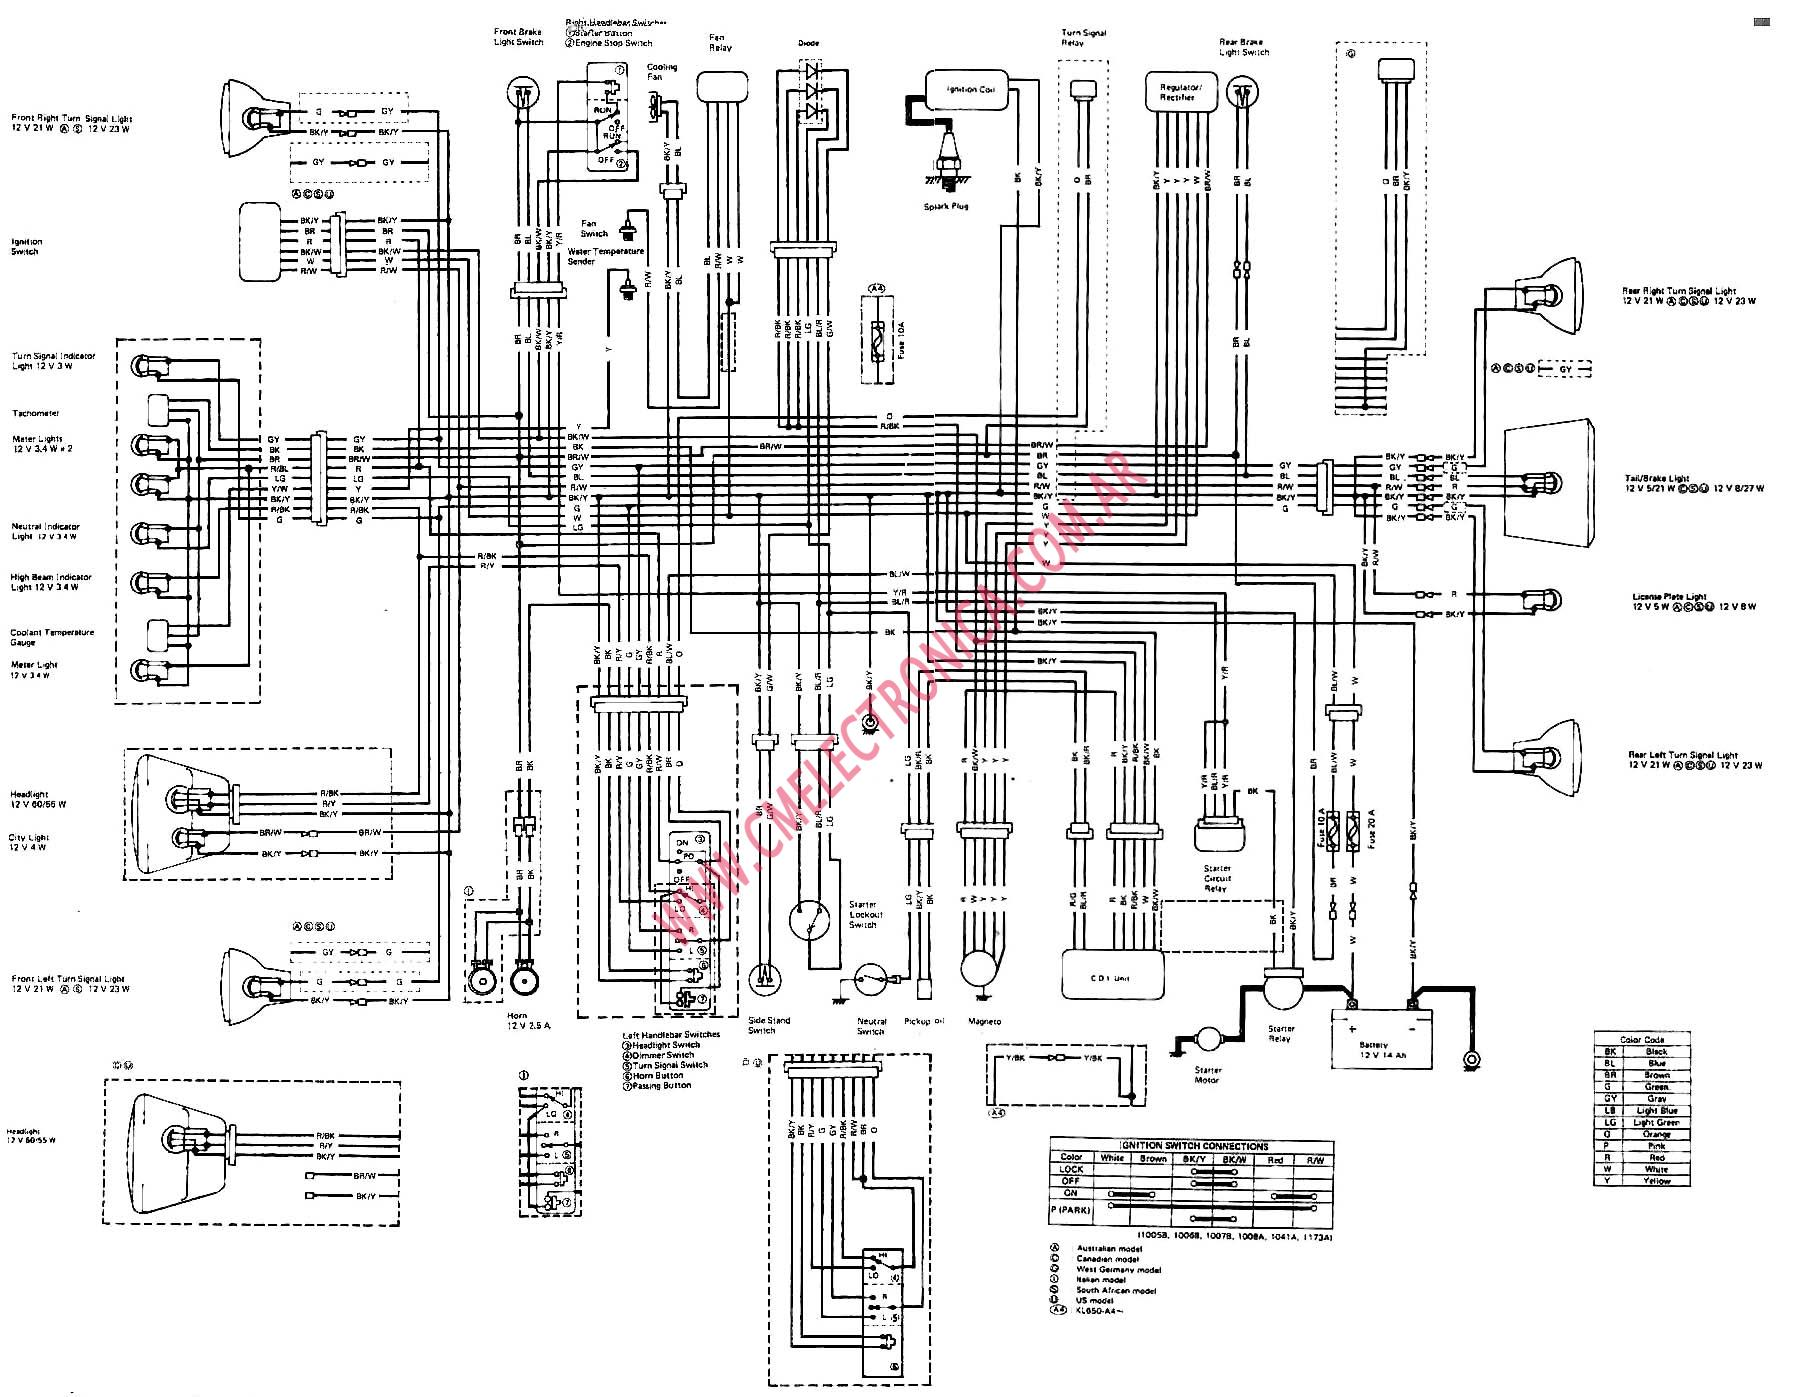 Kawasaki Mule 600 Ignition Wiring Diagram Kawasaki Mule